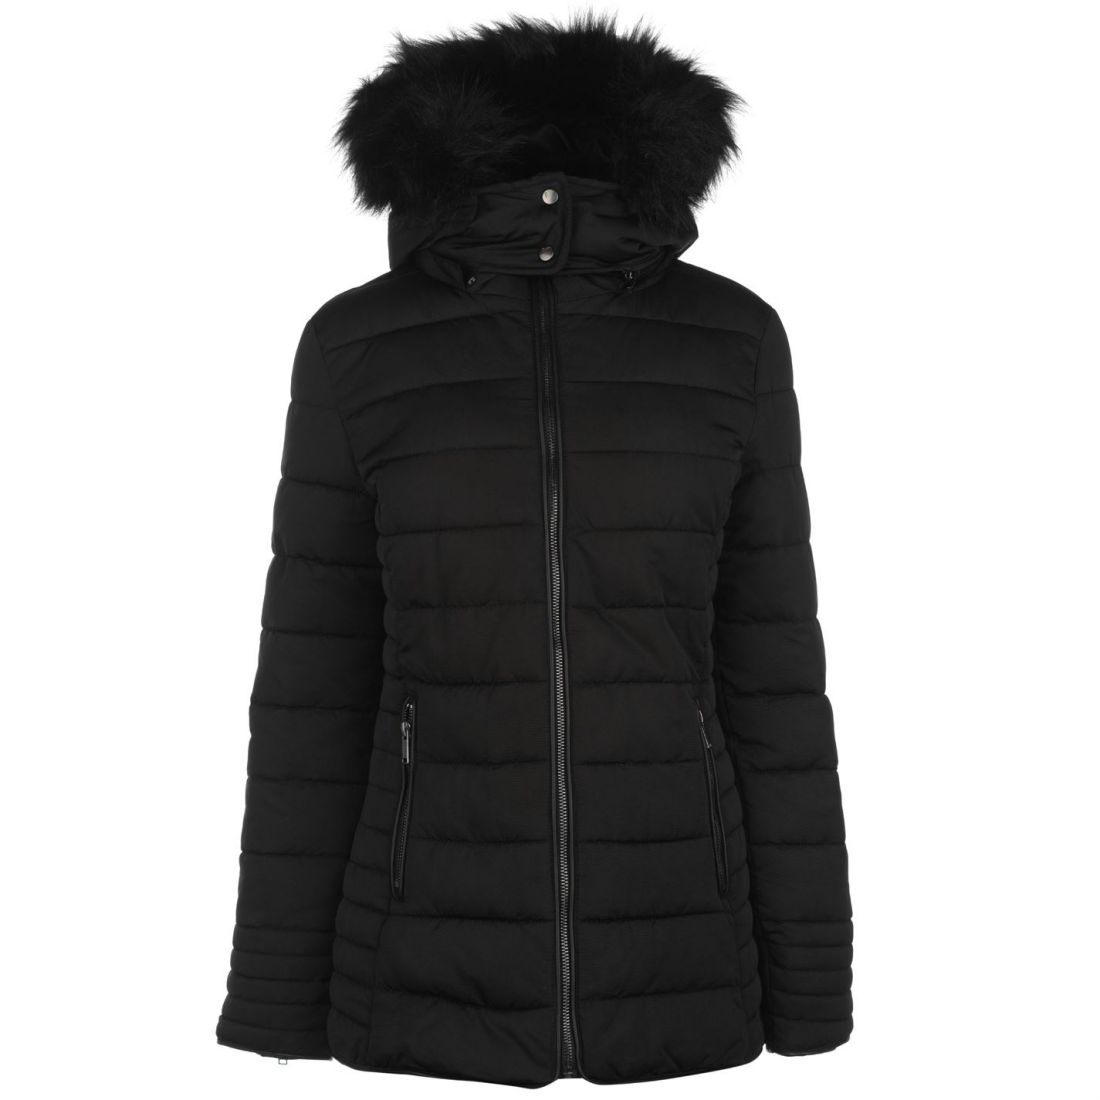 Faux Luxe Trim Dame Firetrap Frakke Bubble Top Puffer Zip Hooded Fur Jacket P5vdvZqw